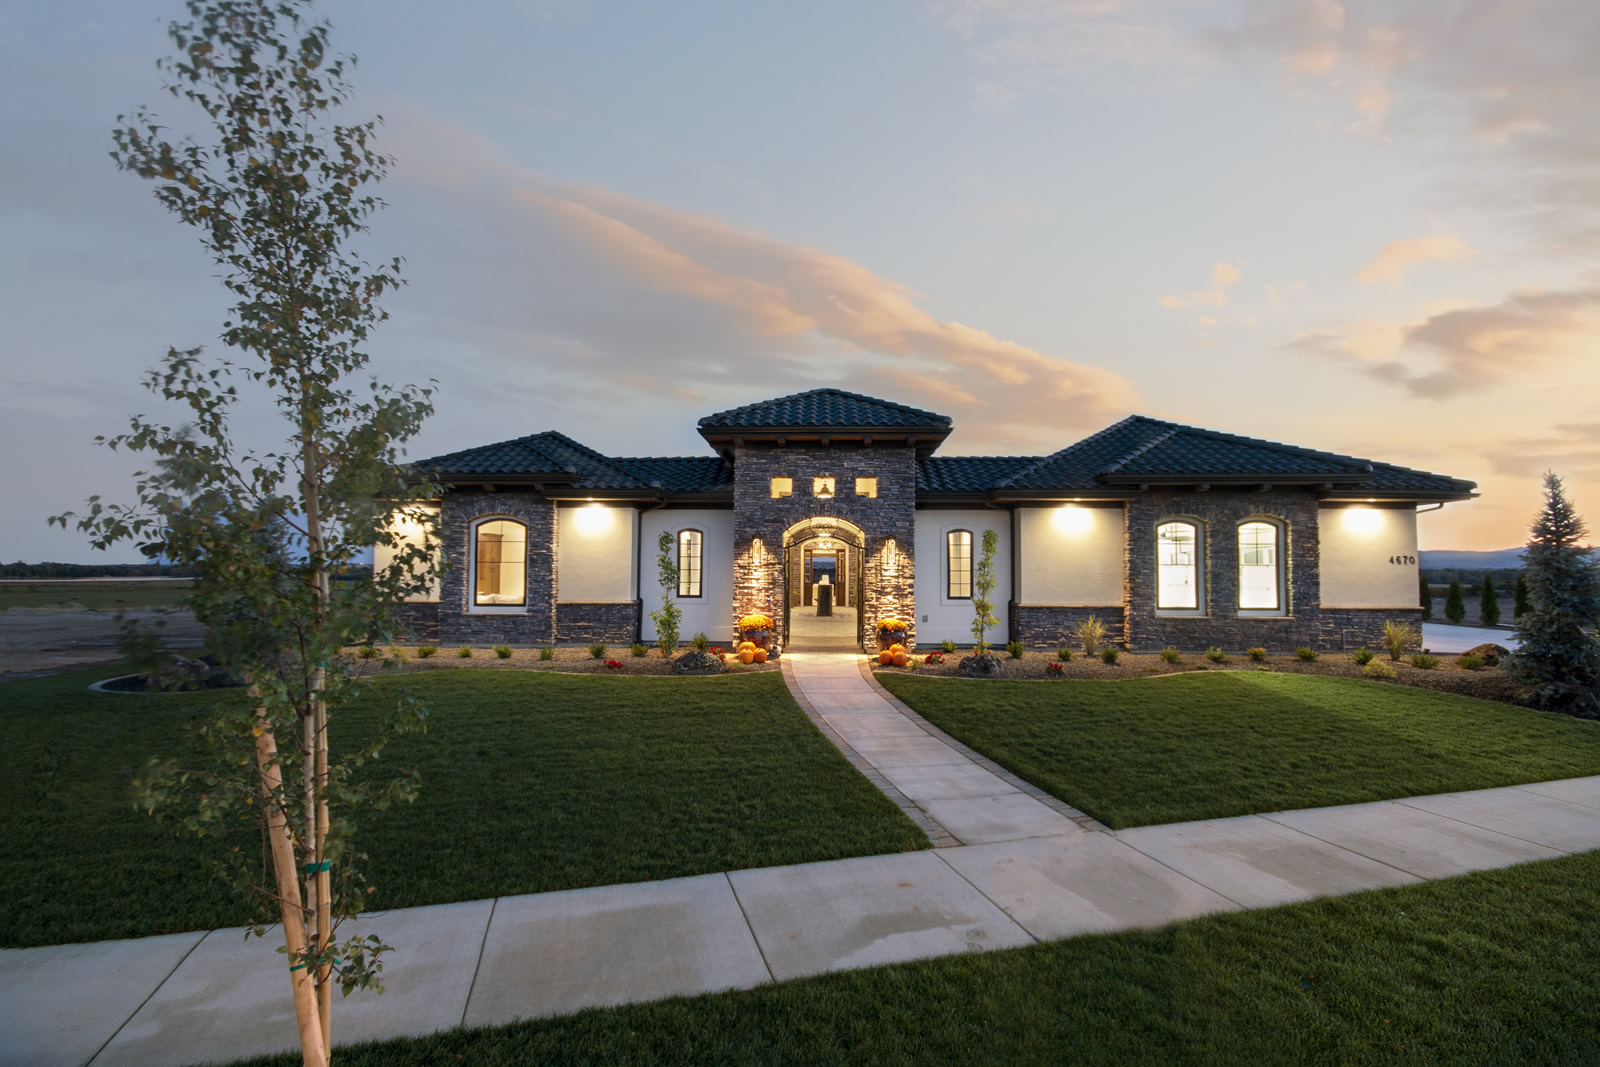 2019 Parade Home at Heron Ridge